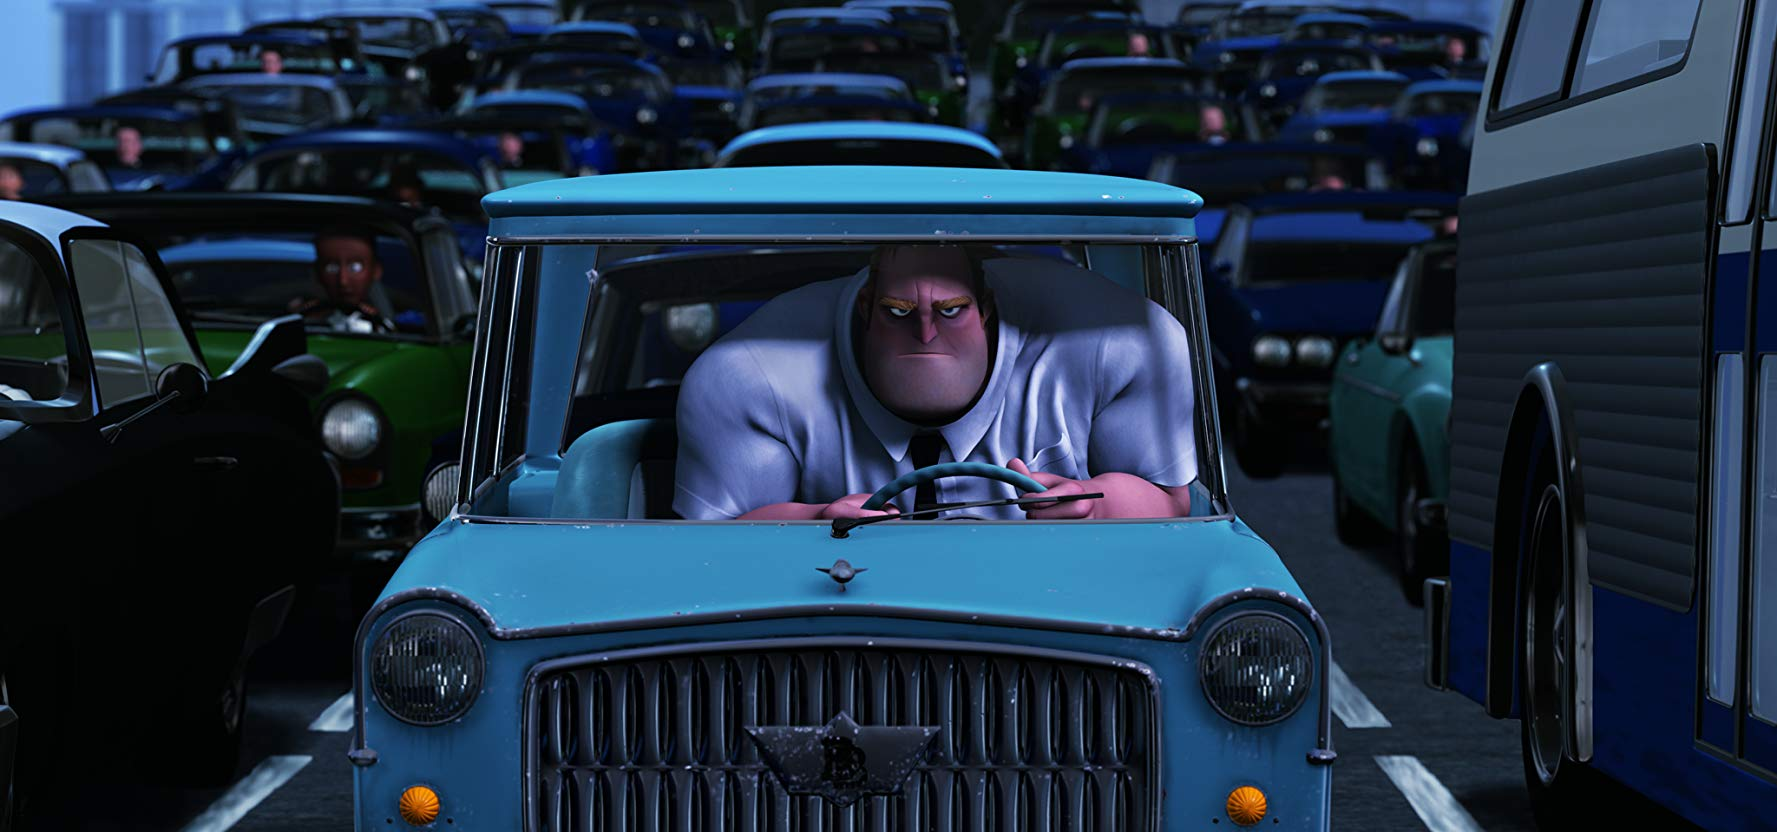 Bob champing in frustration in traffic in The Incredibles (2004)